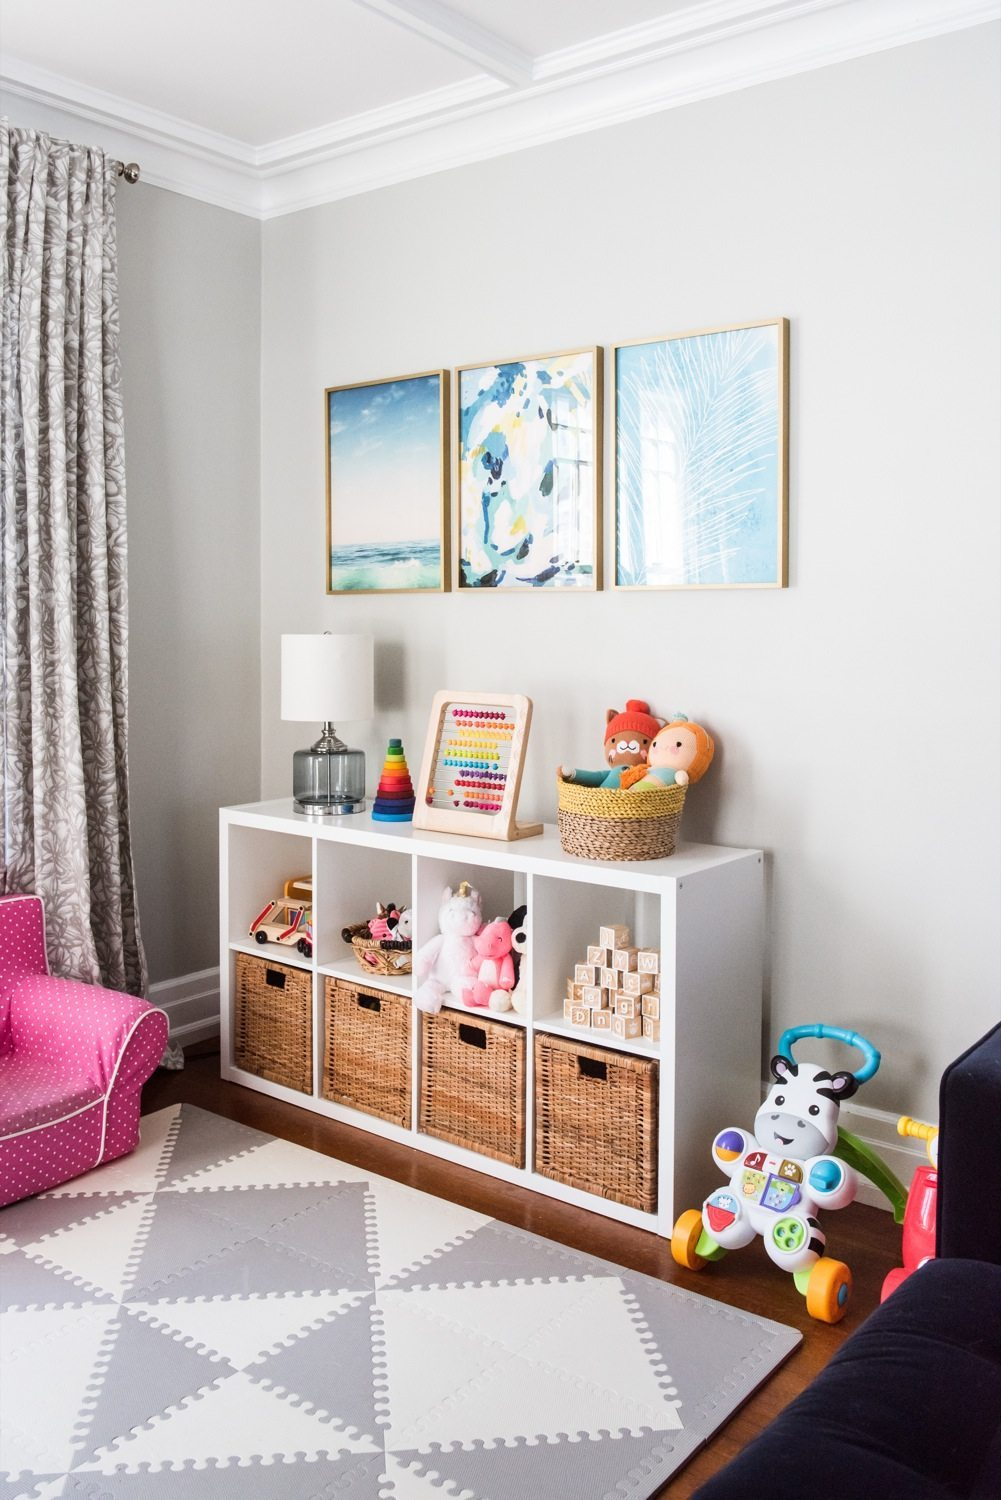 Emerson 39 s modern playroom tour the sweetest occasion for New decorating ideas